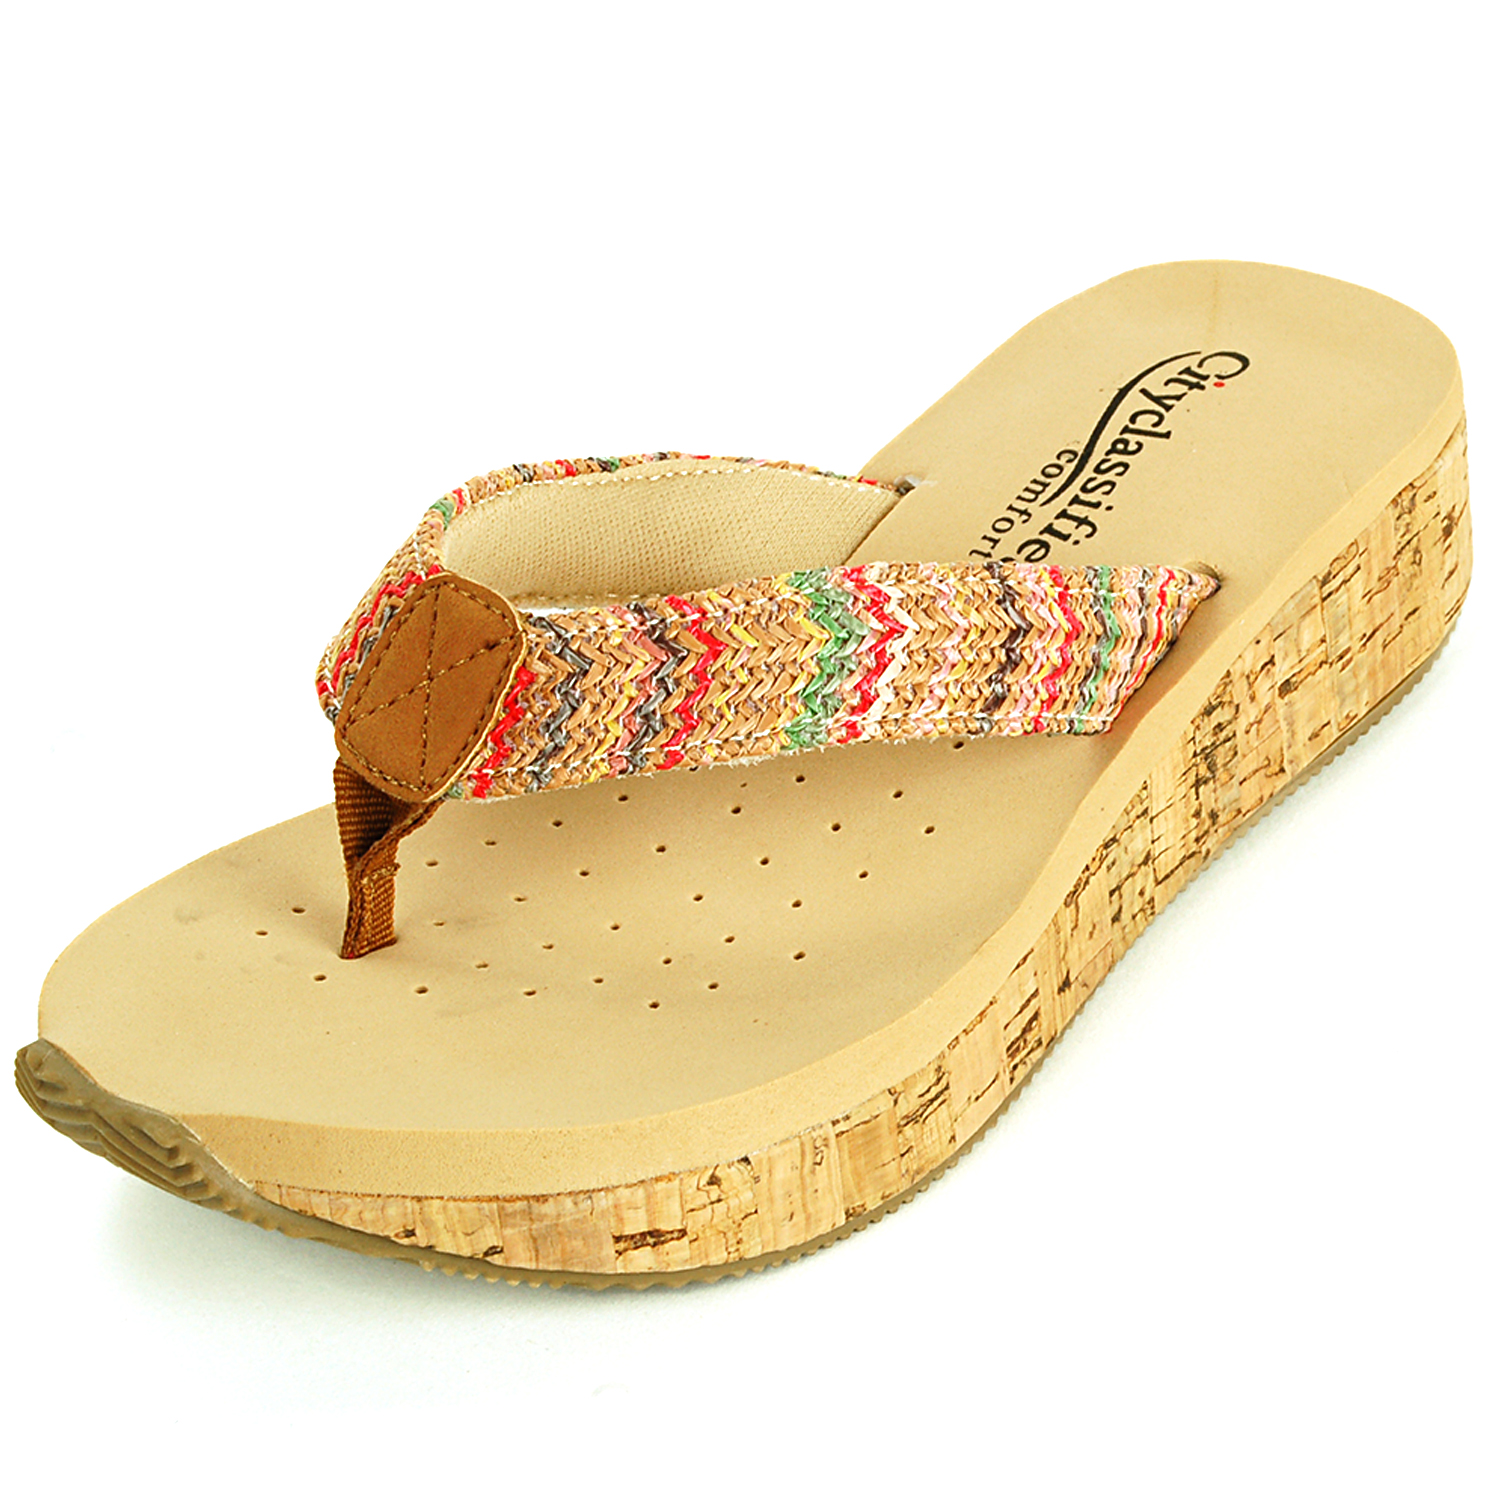 Womens Sandals Wedge Heel Cork Mule Padded Comfort Open Toe Thong Platform Shoes Tan Size 6.5